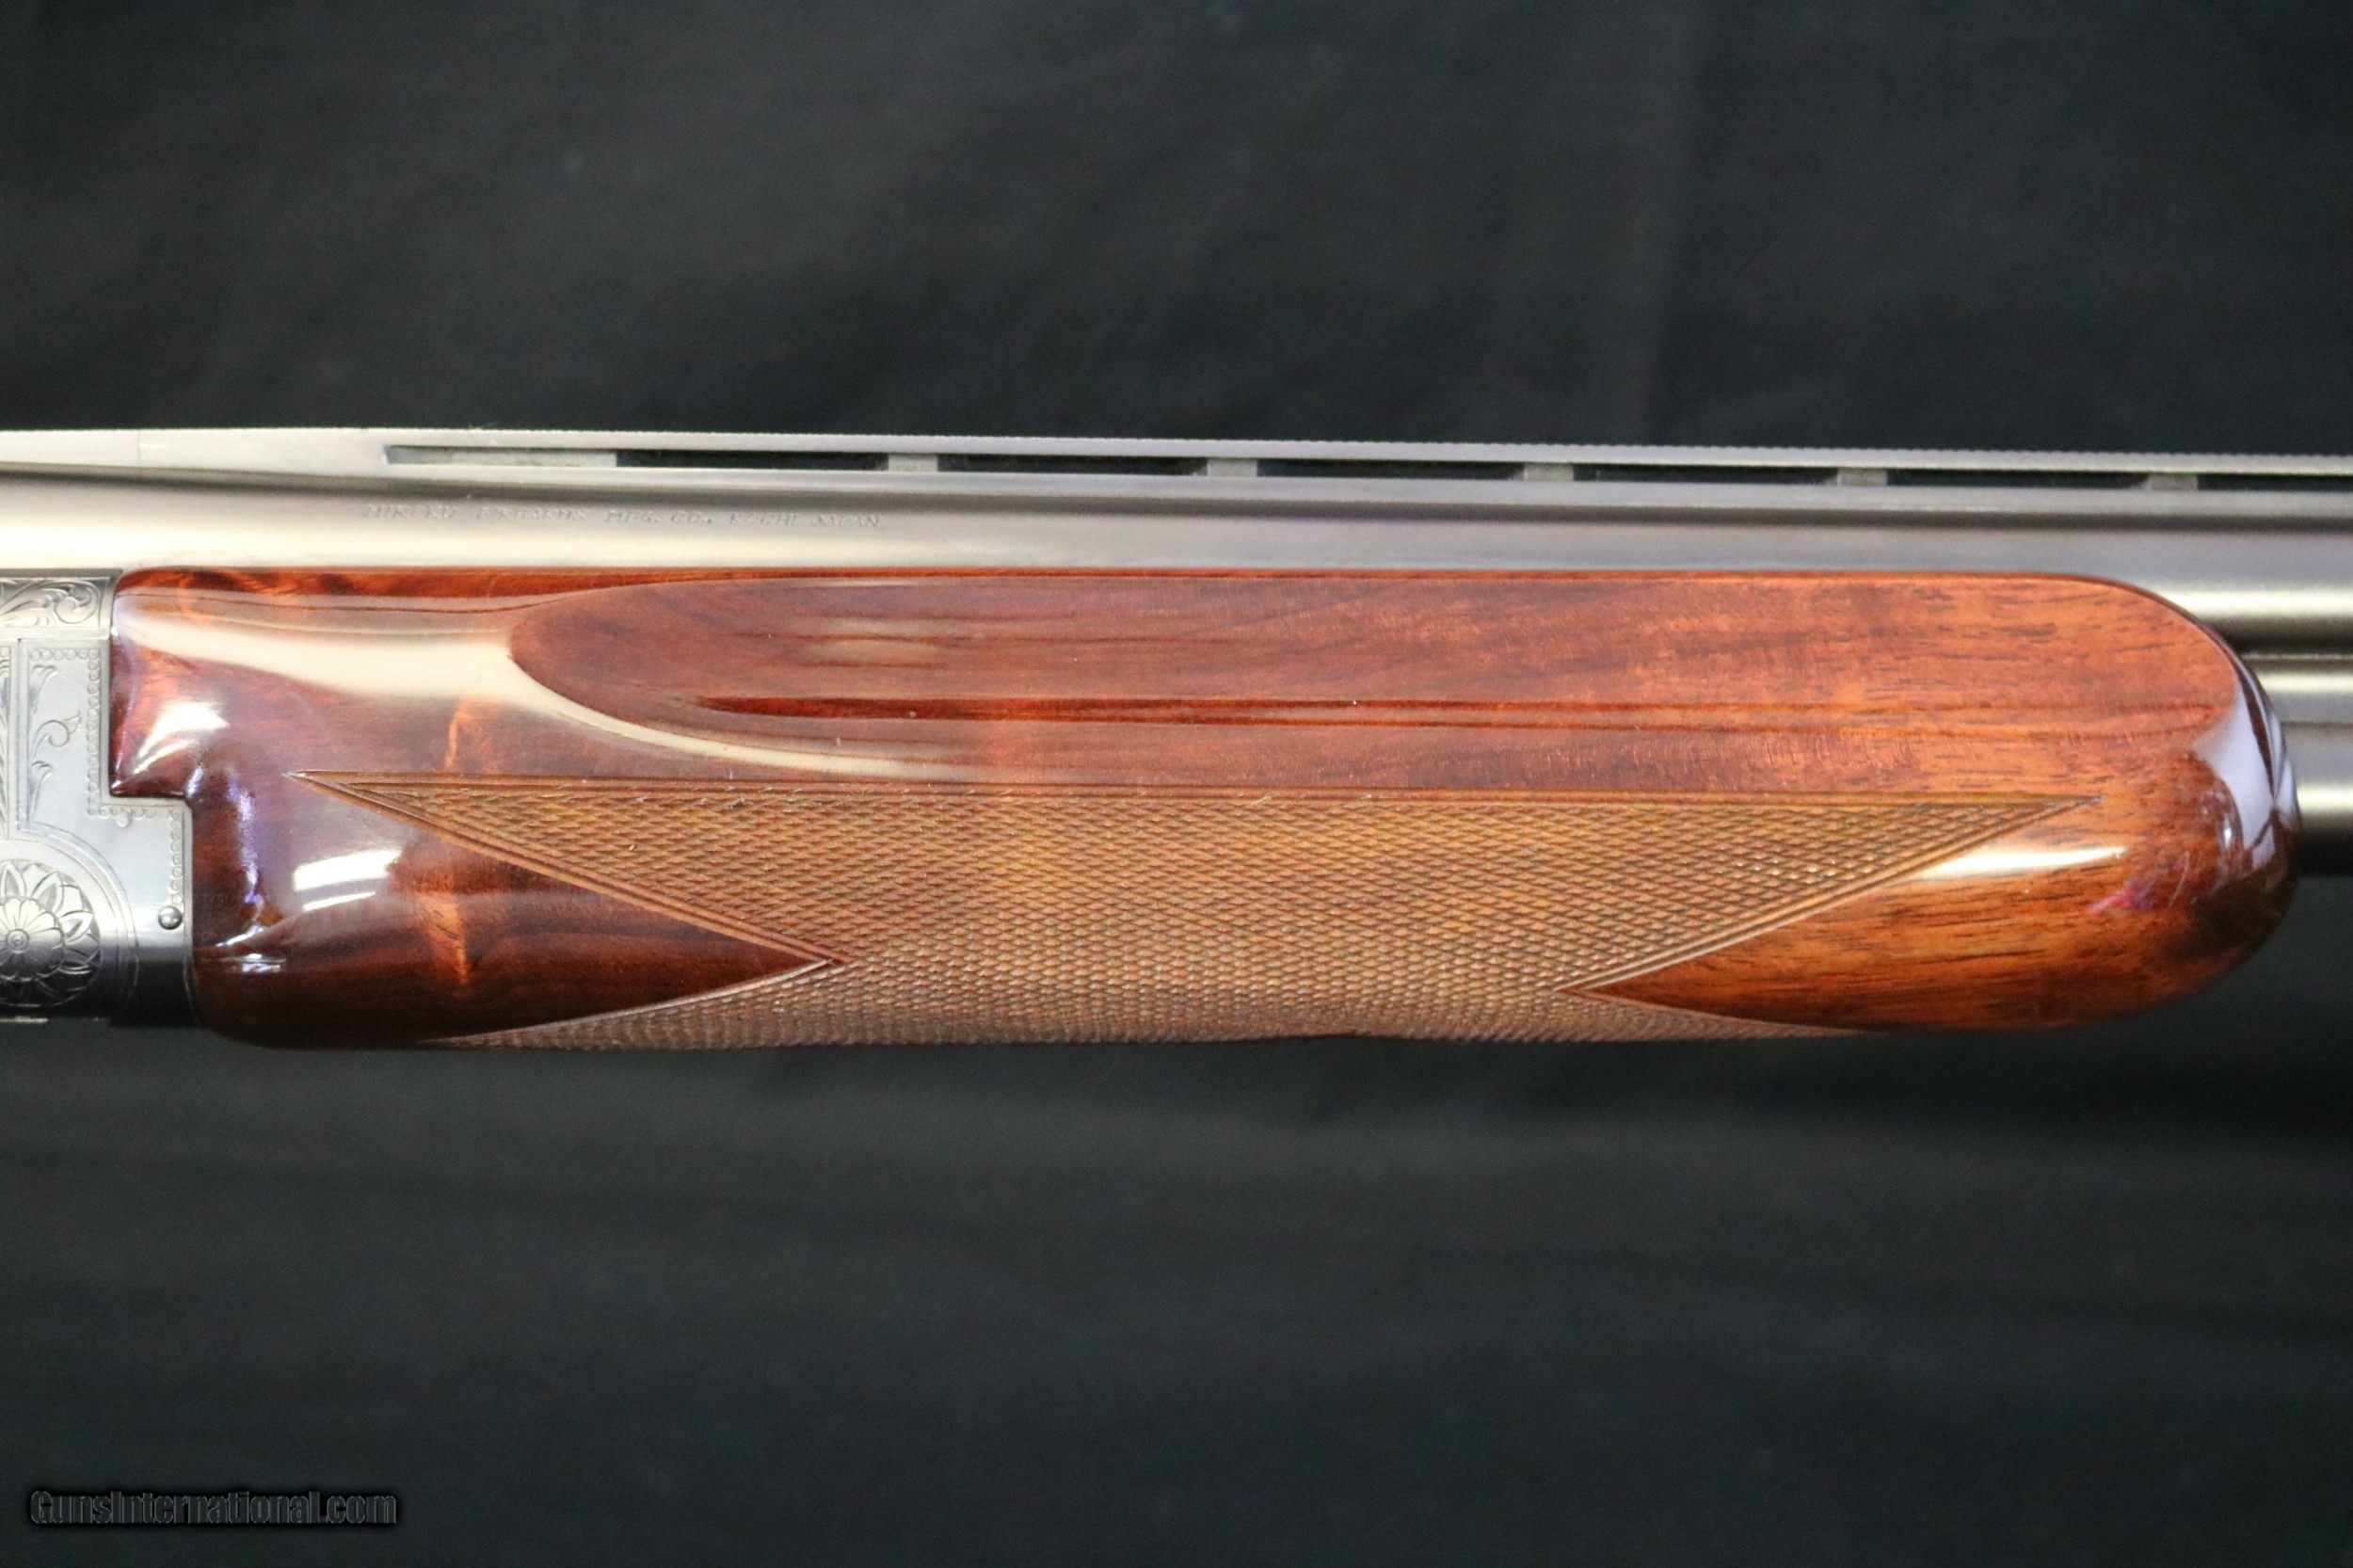 sold) BC Miroku Charles Daly Superior Trap 12 gauge with